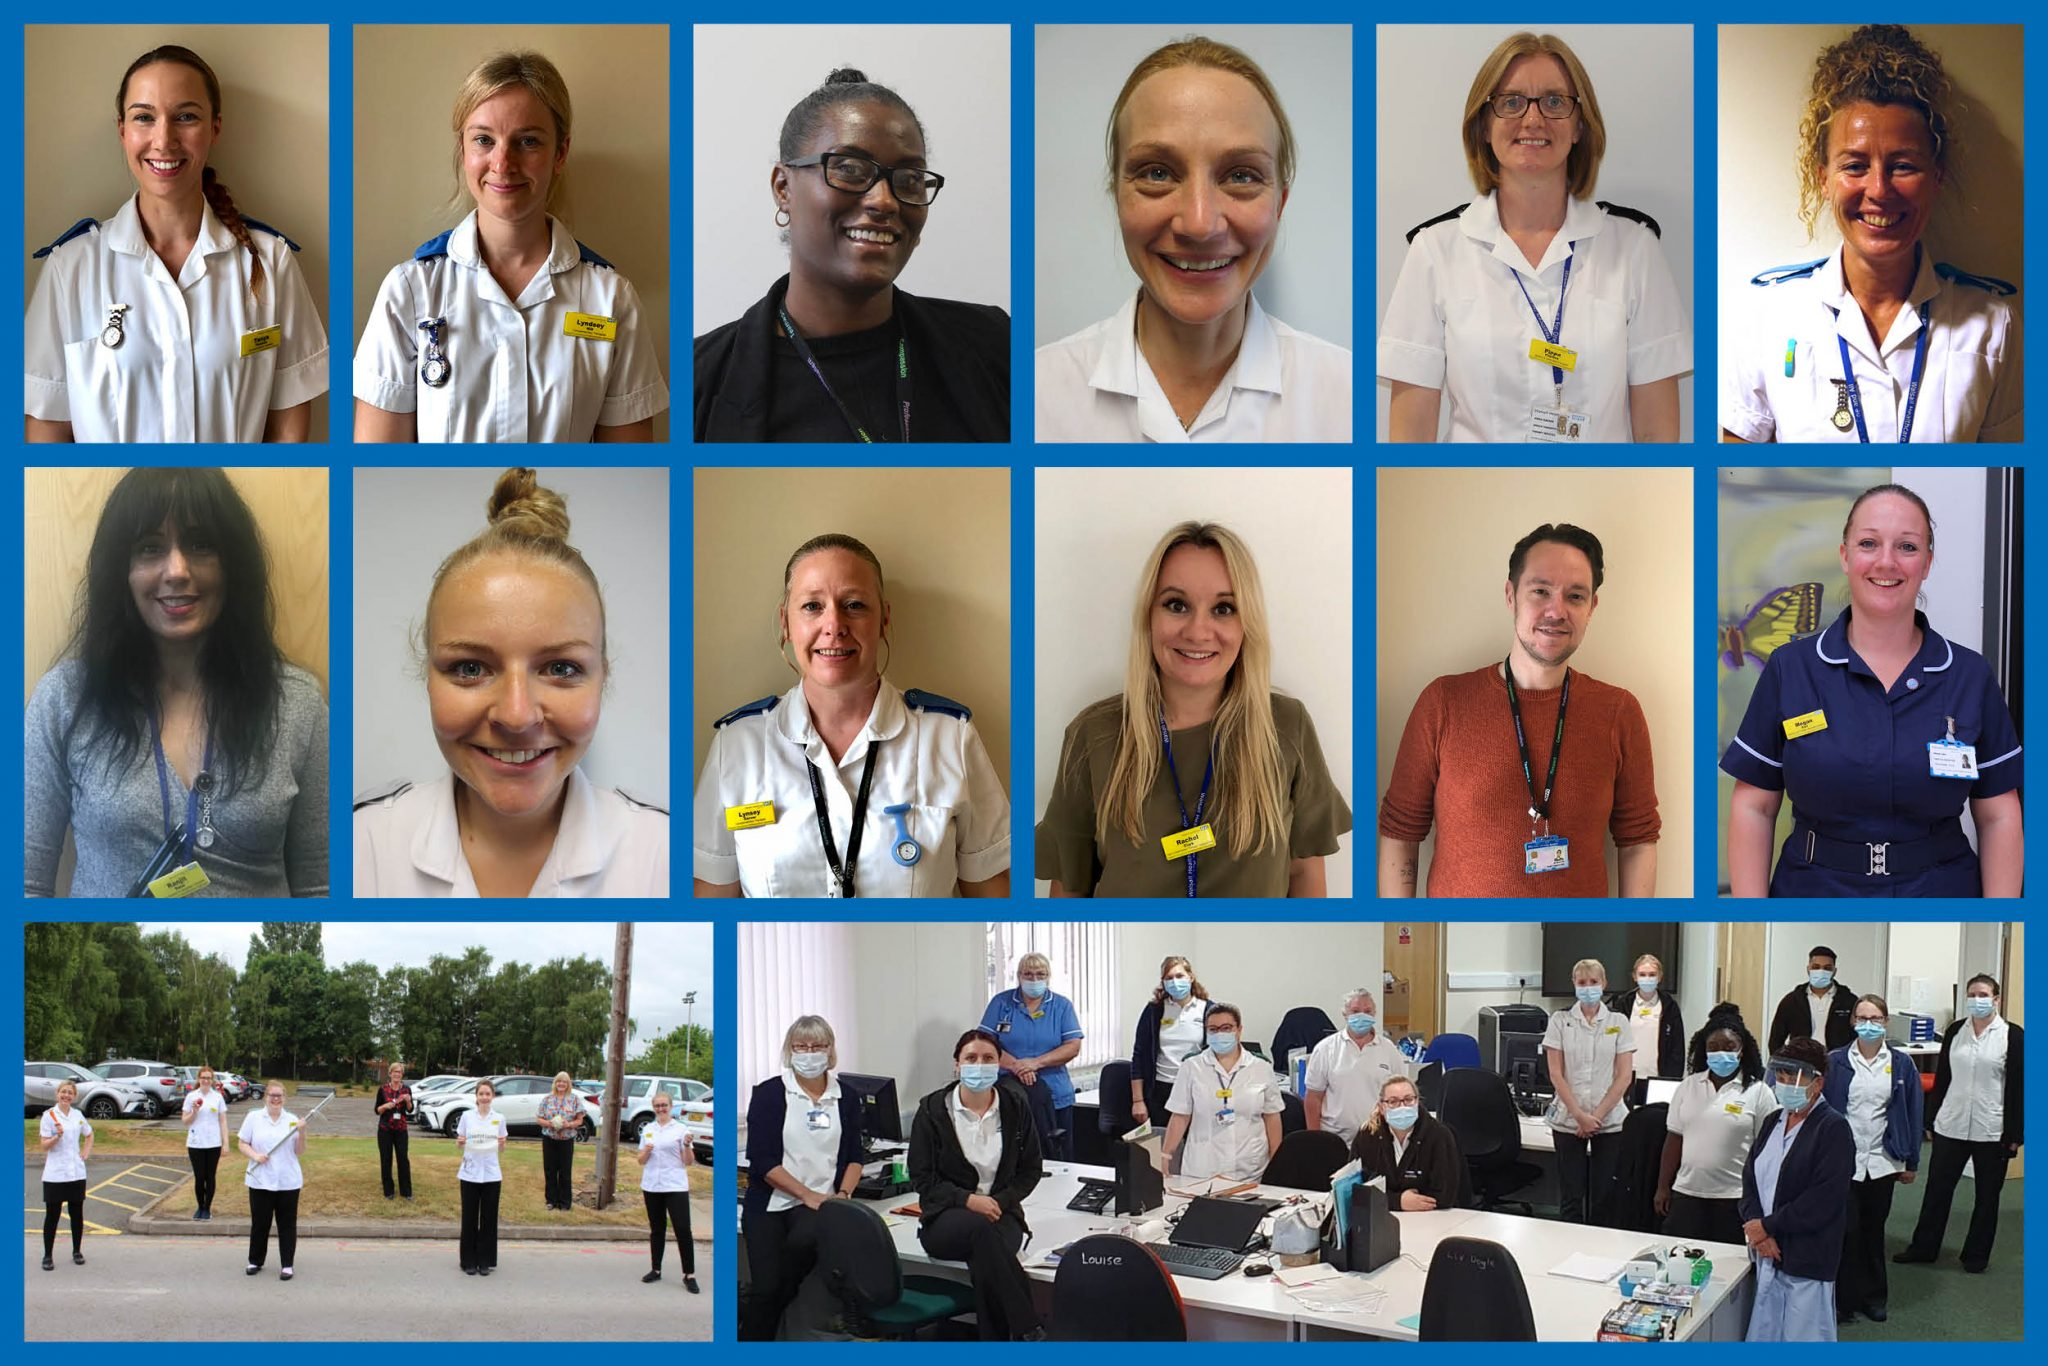 Allied Health Professionals at Walsall Healthcare